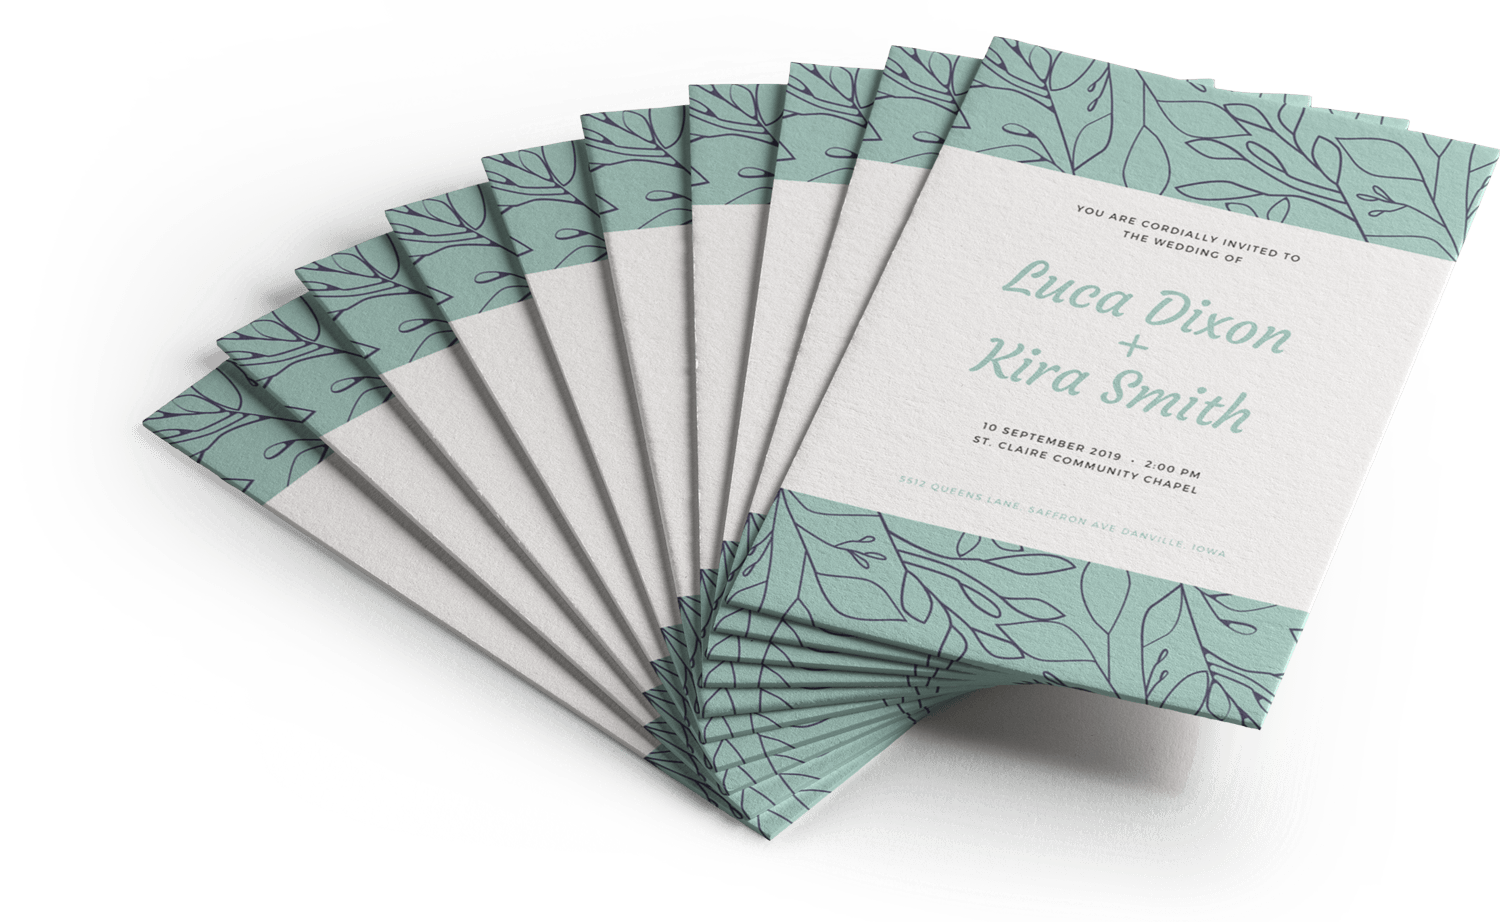 Thousands of invitation designs for every party under the sun